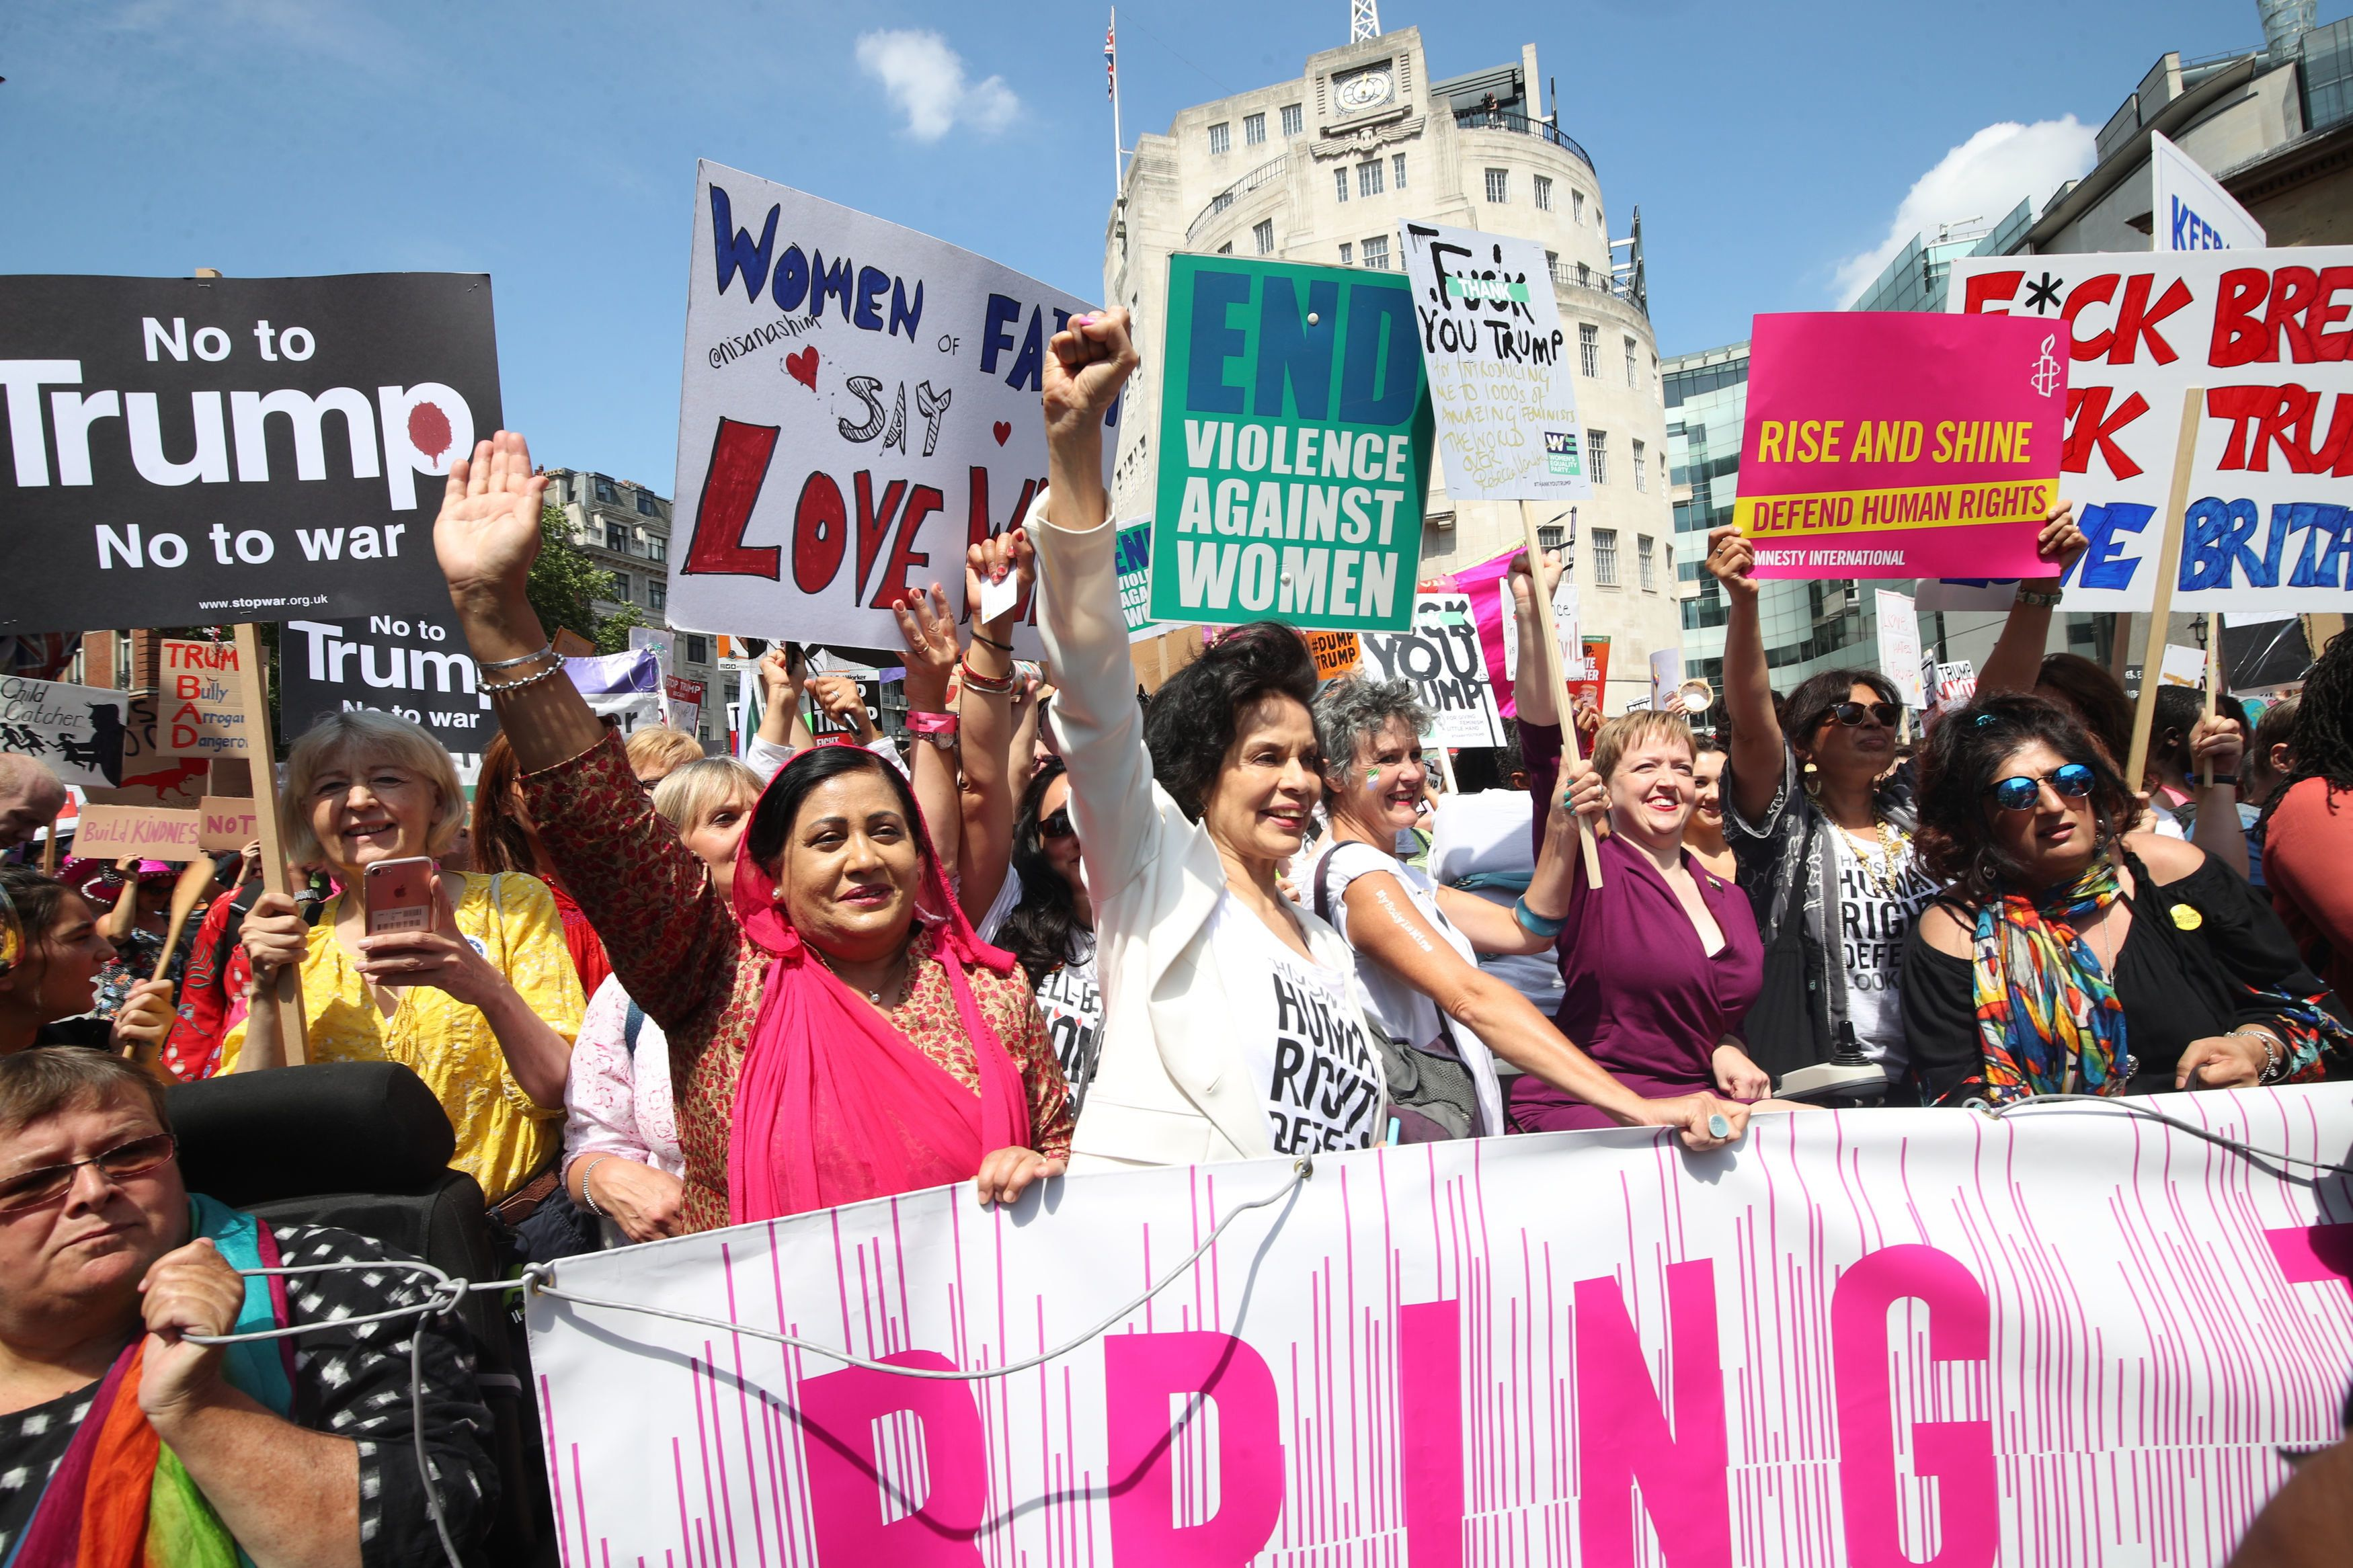 Austerity Leaving British Women 'In A Precarious Situation', Leading Charity